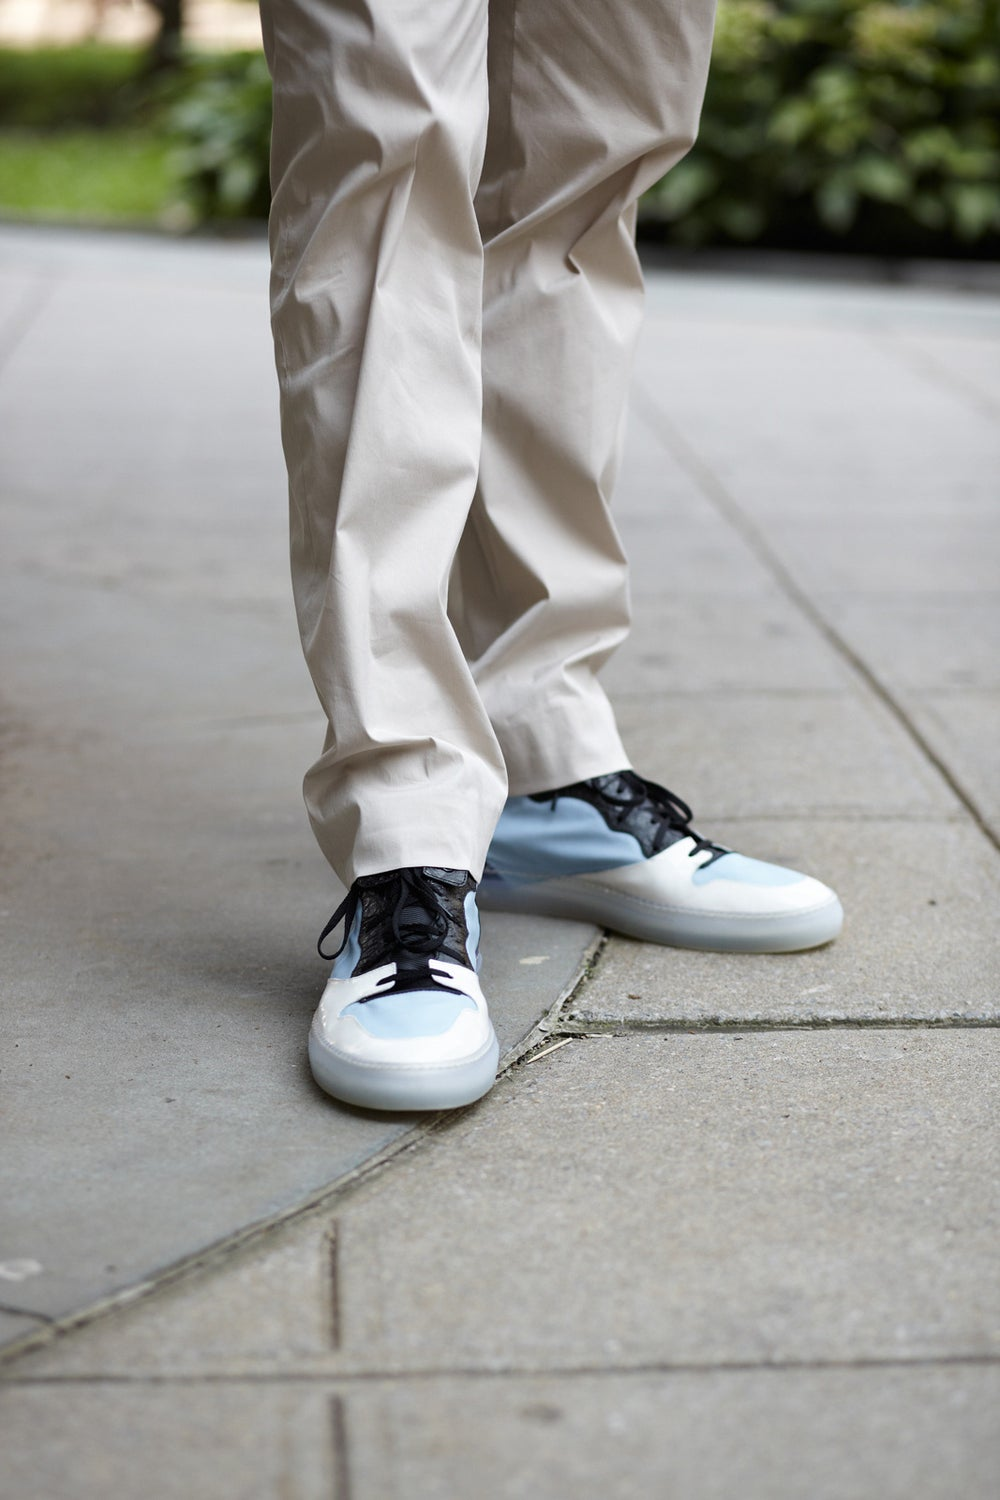 Kevin's Balenciaga sneakers aren't half-bad either.